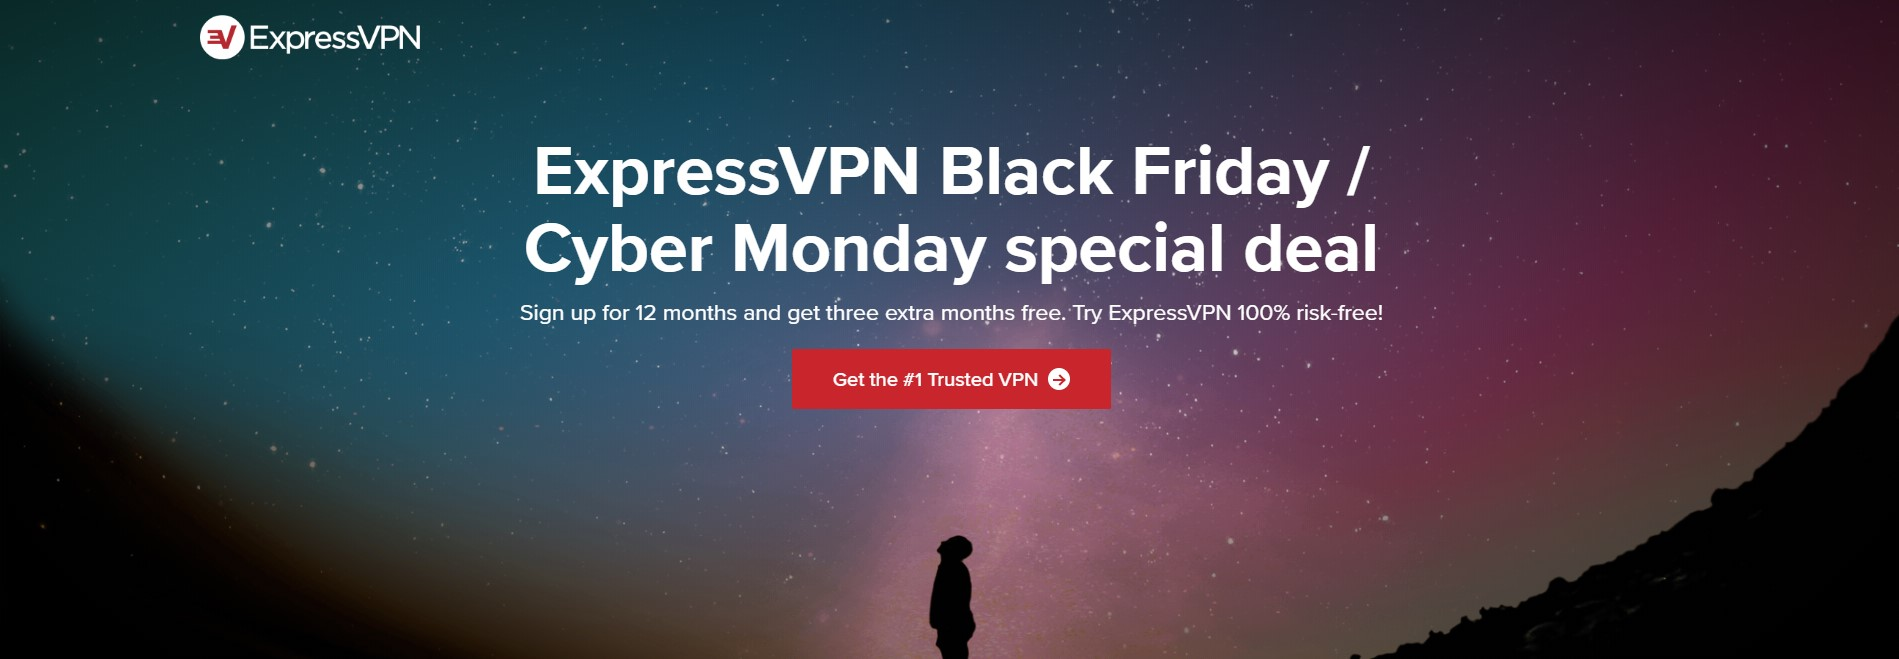 ExpressVPN Black Friday Cyber Monday deal